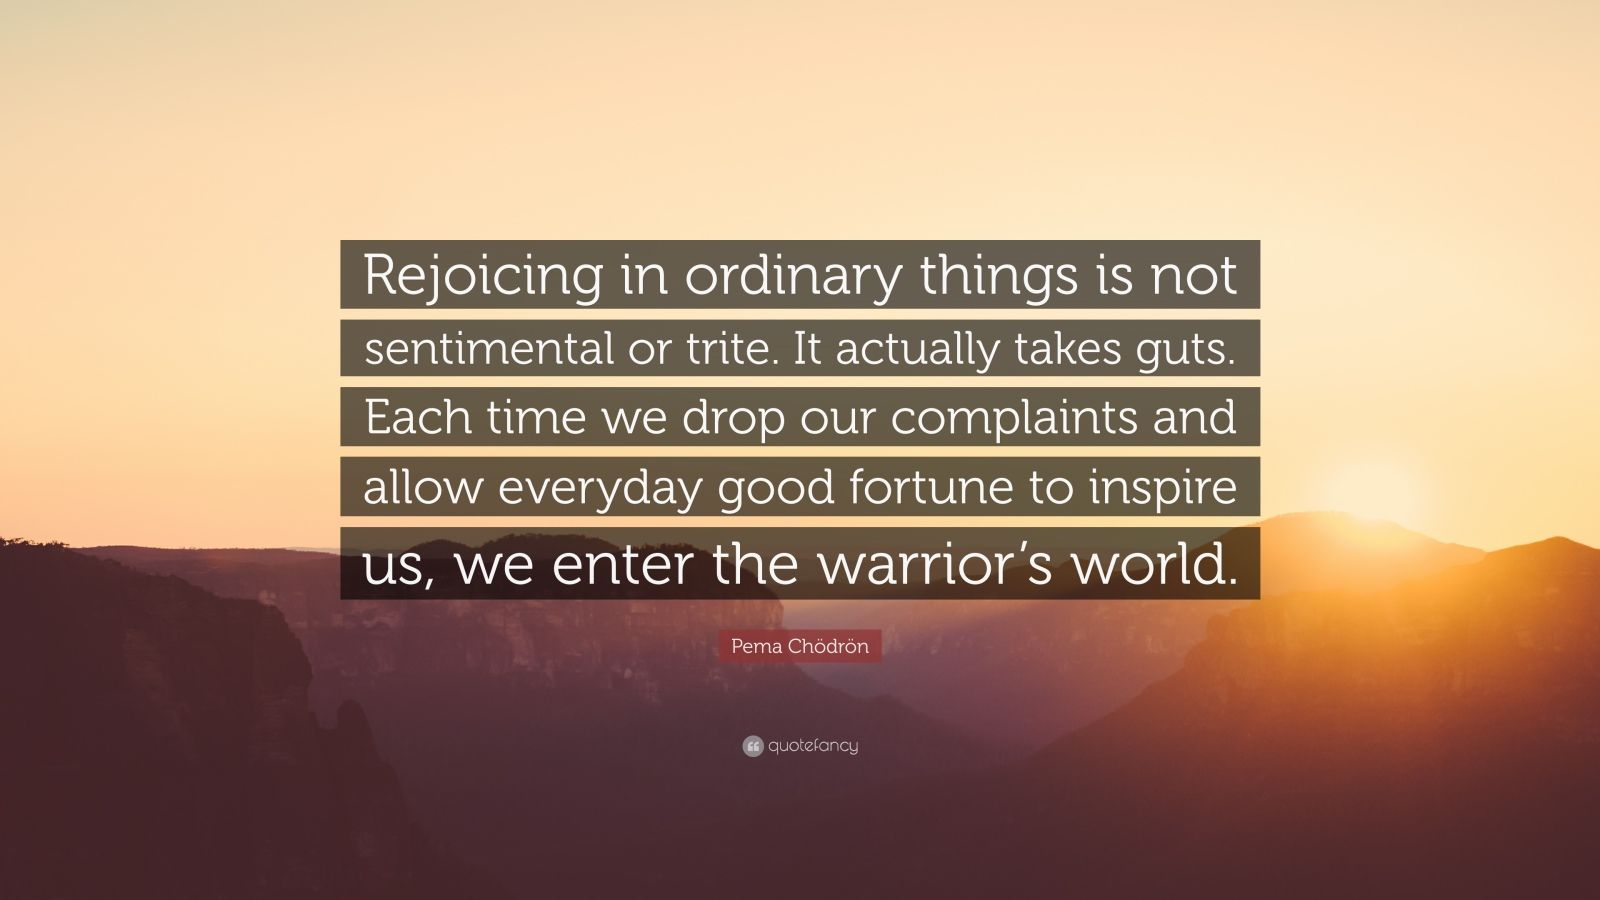 """Pema Chödrön Quote: """"Rejoicing in ordinary things is not sentimental or trite. It actually takes guts. Each time we drop our complaints and allow everyday good fortune to inspire us, we enter the warrior's world."""""""